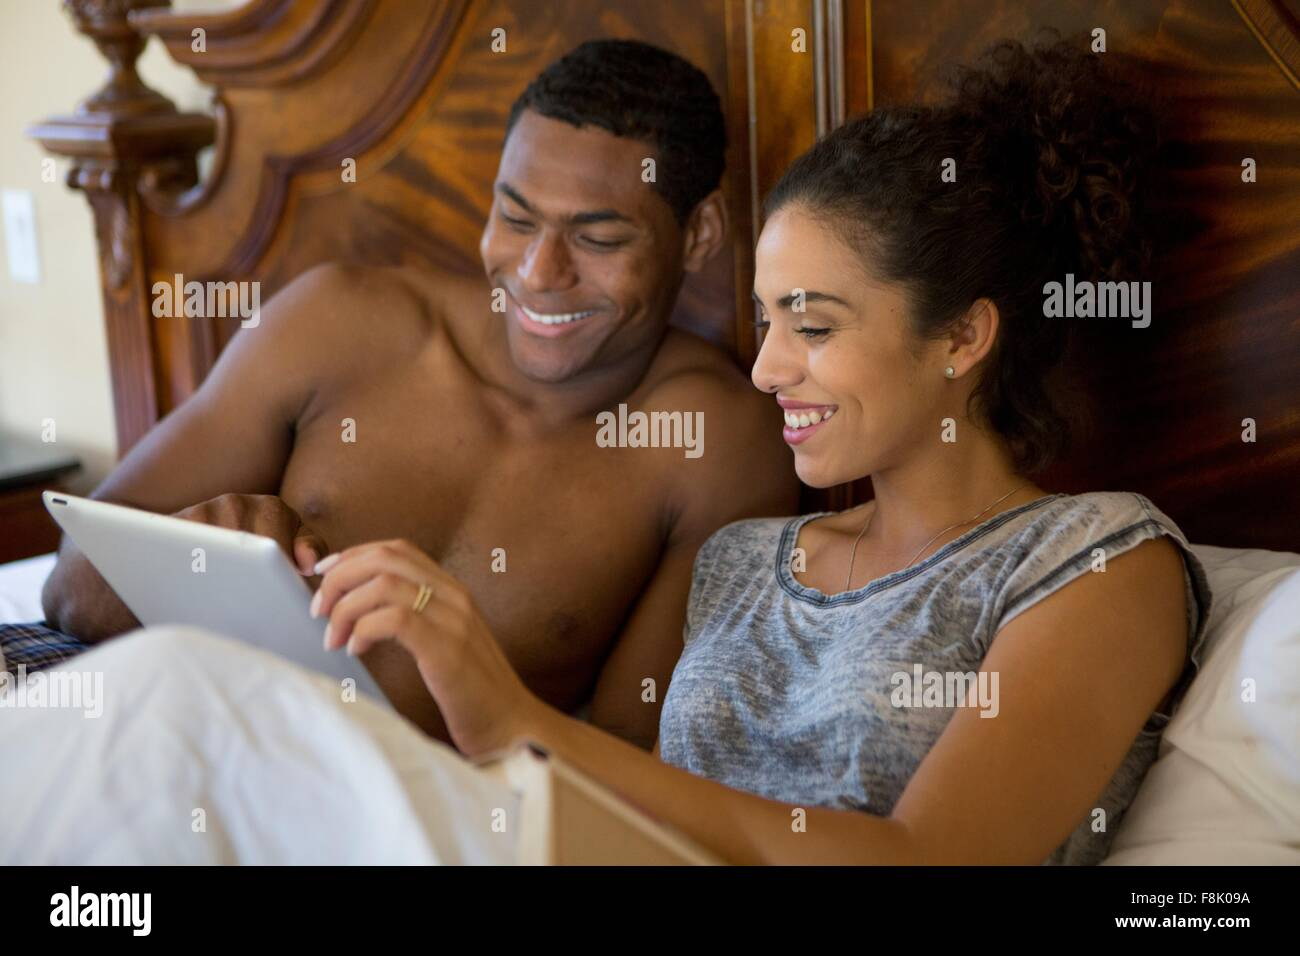 Couple in bed using digital tablet smiling - Stock Image